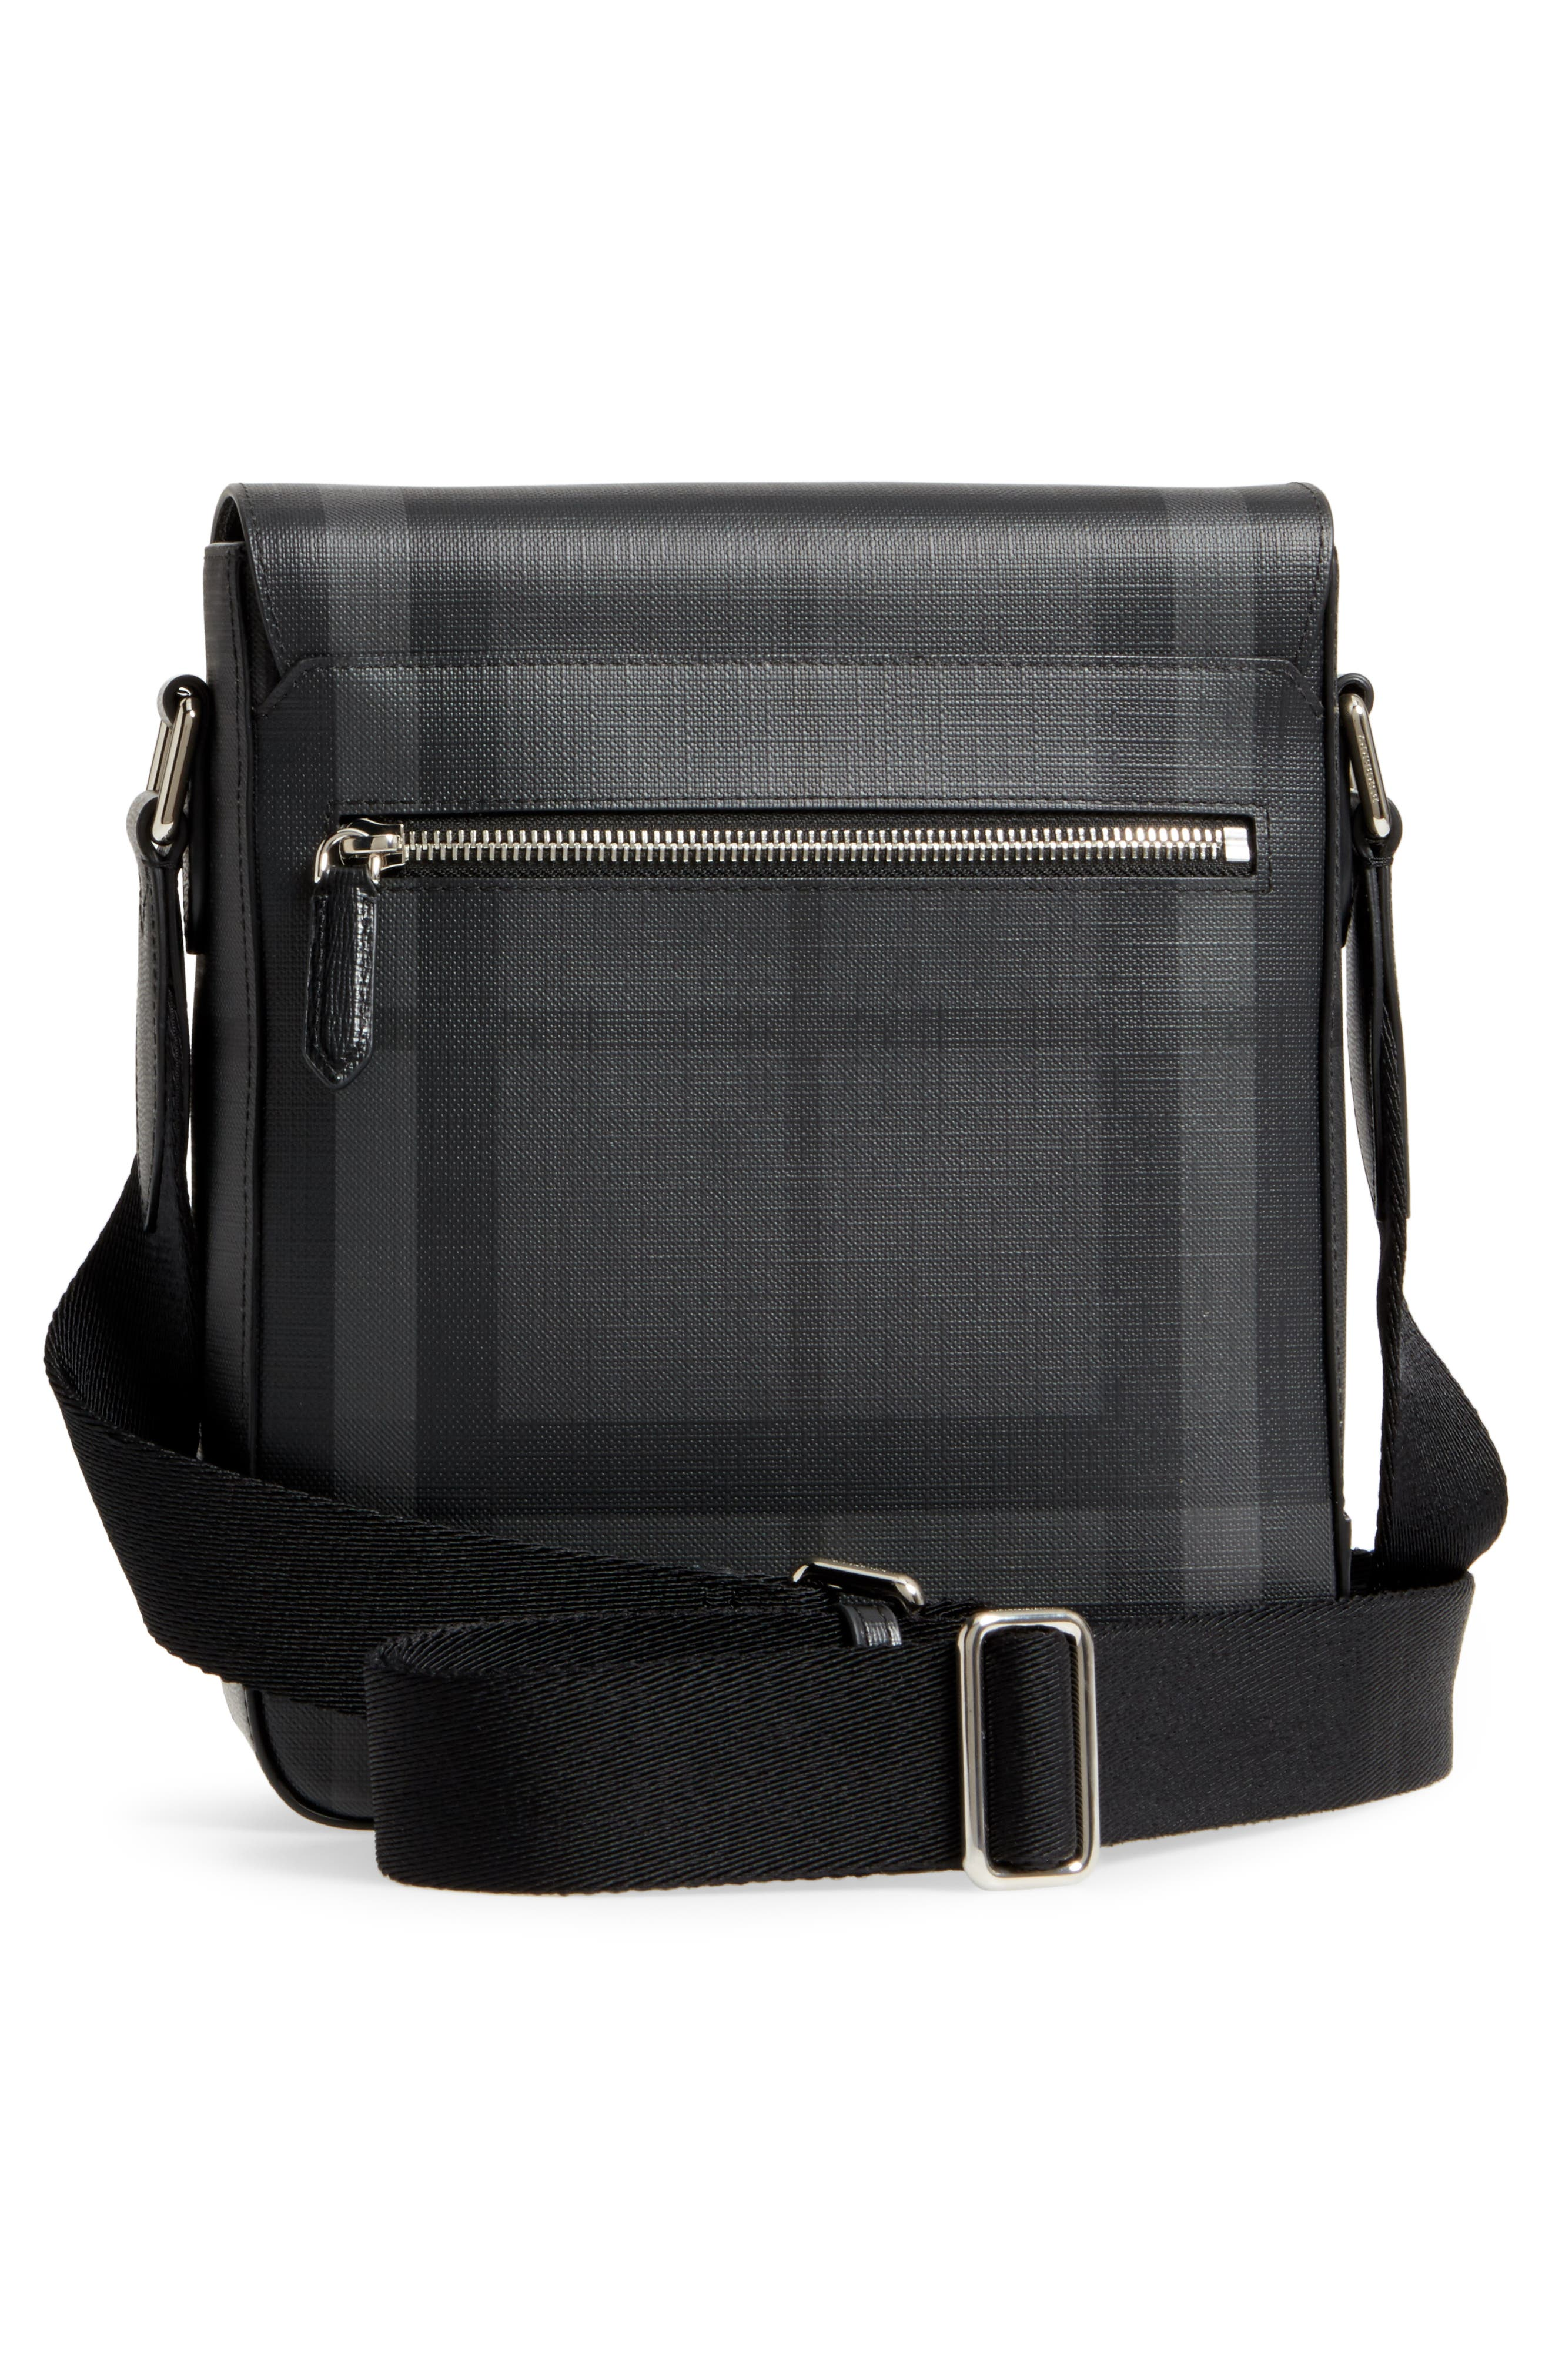 Greenford Crossbody Bag,                             Alternate thumbnail 3, color,                             Charcoal/ Black